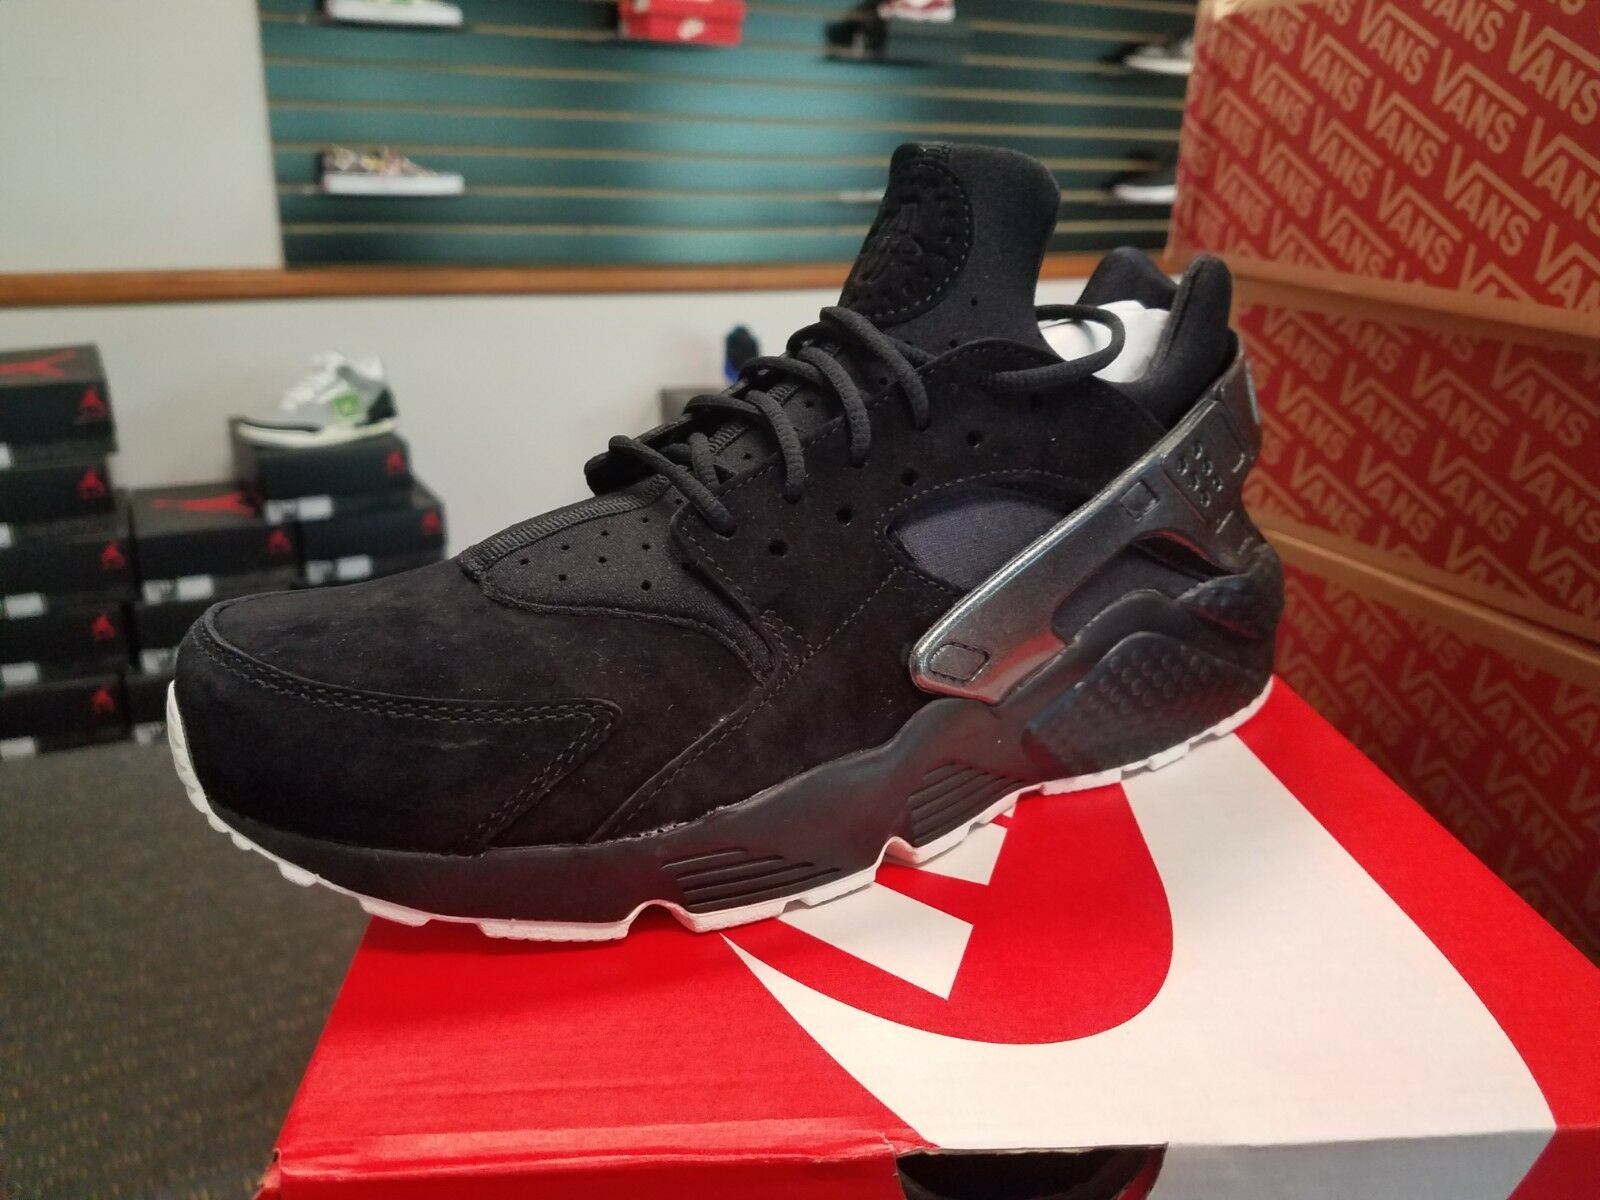 Brand New in Box Men's Nike Air Huarache Run PRM Black Sail 704830-014 Running